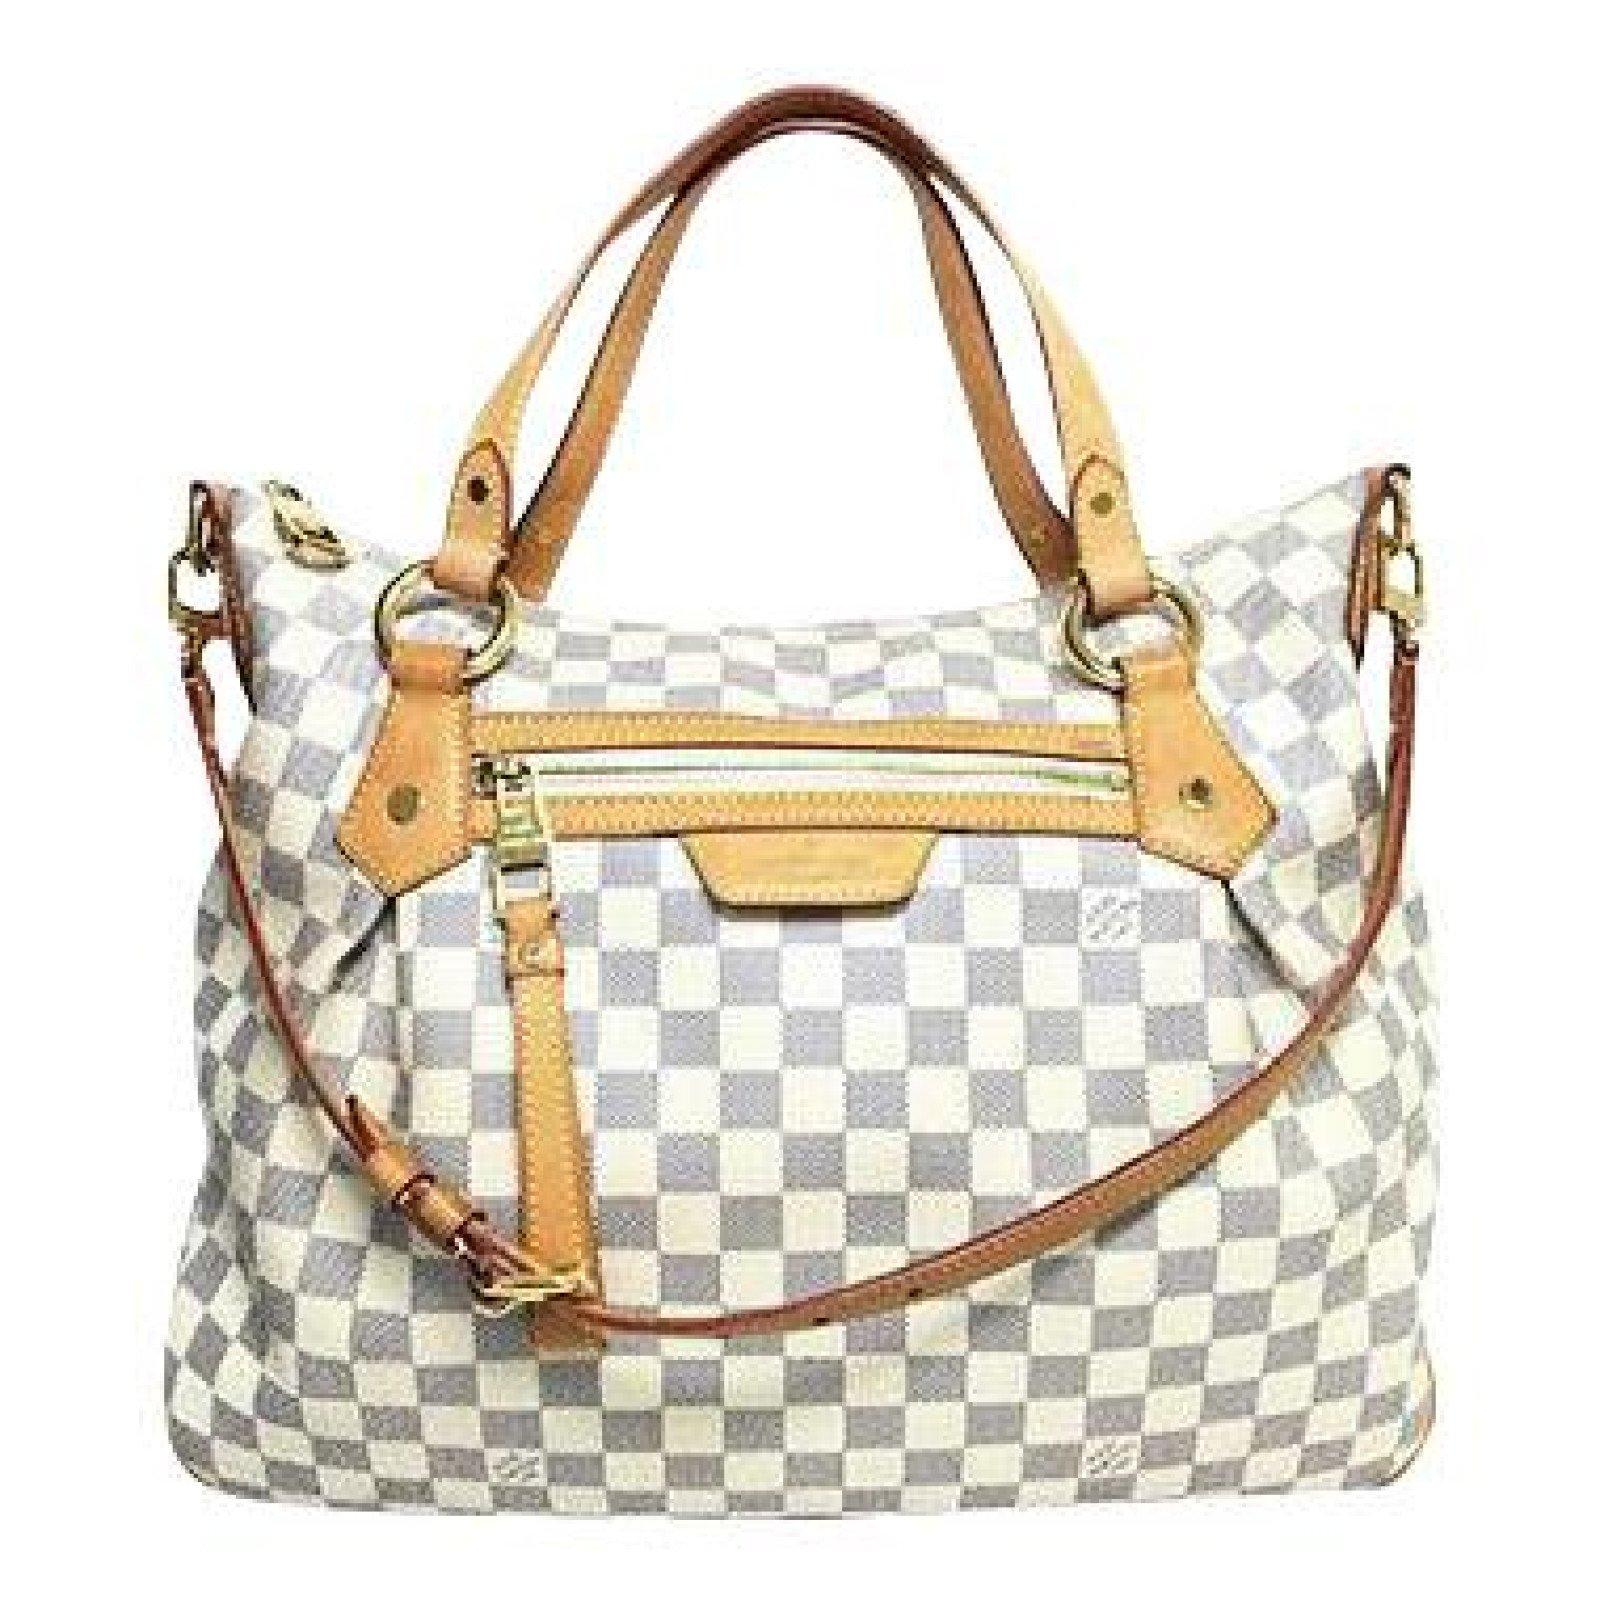 492a3782a21a Louis Vuitton Damier Azur Evora MM - Oliver Jewellery